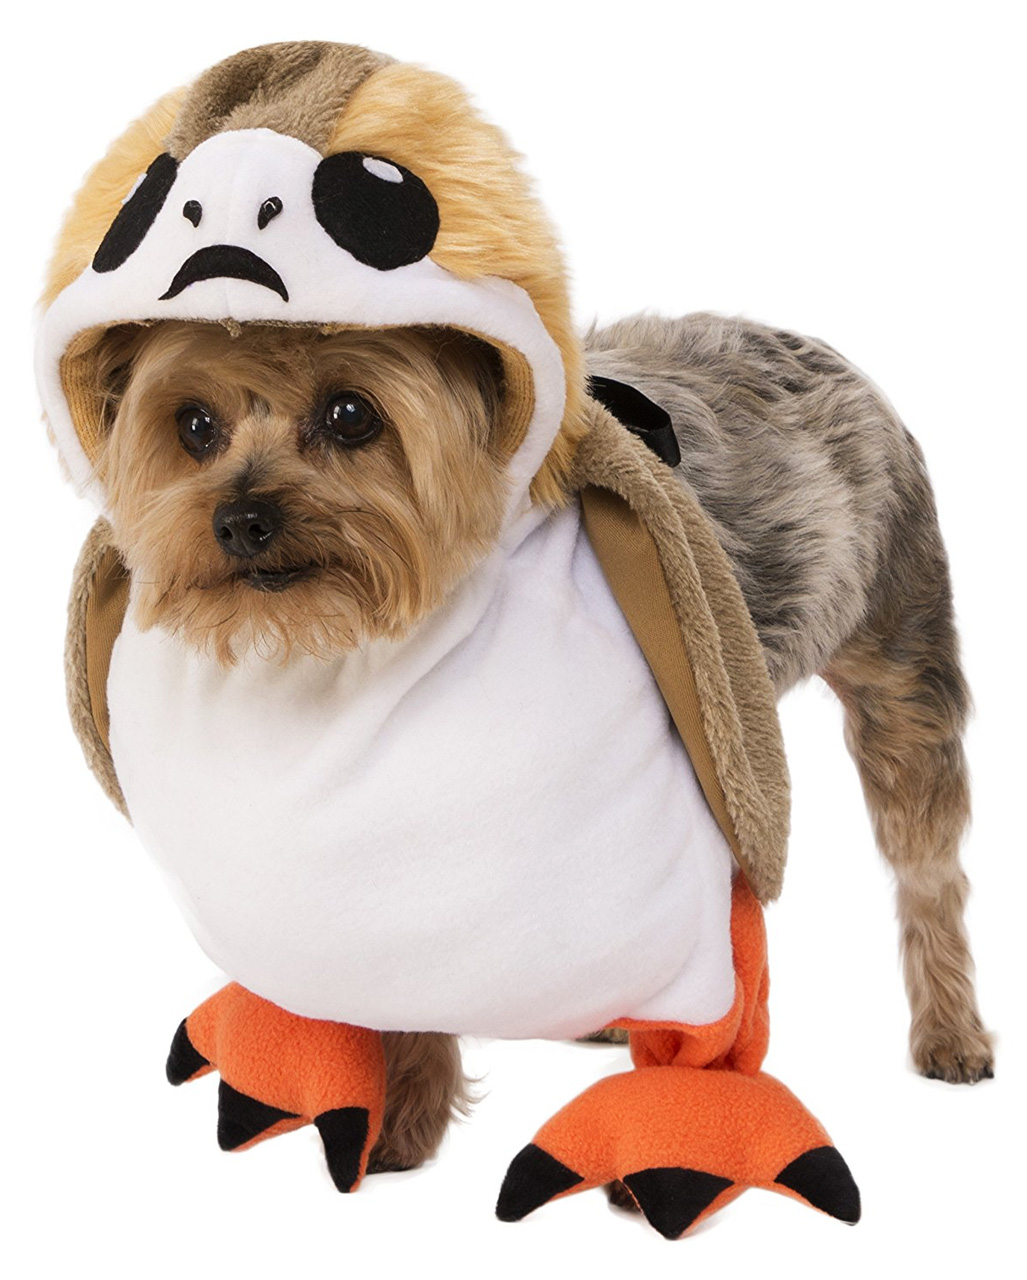 star wars porg dog costume to order horror. Black Bedroom Furniture Sets. Home Design Ideas